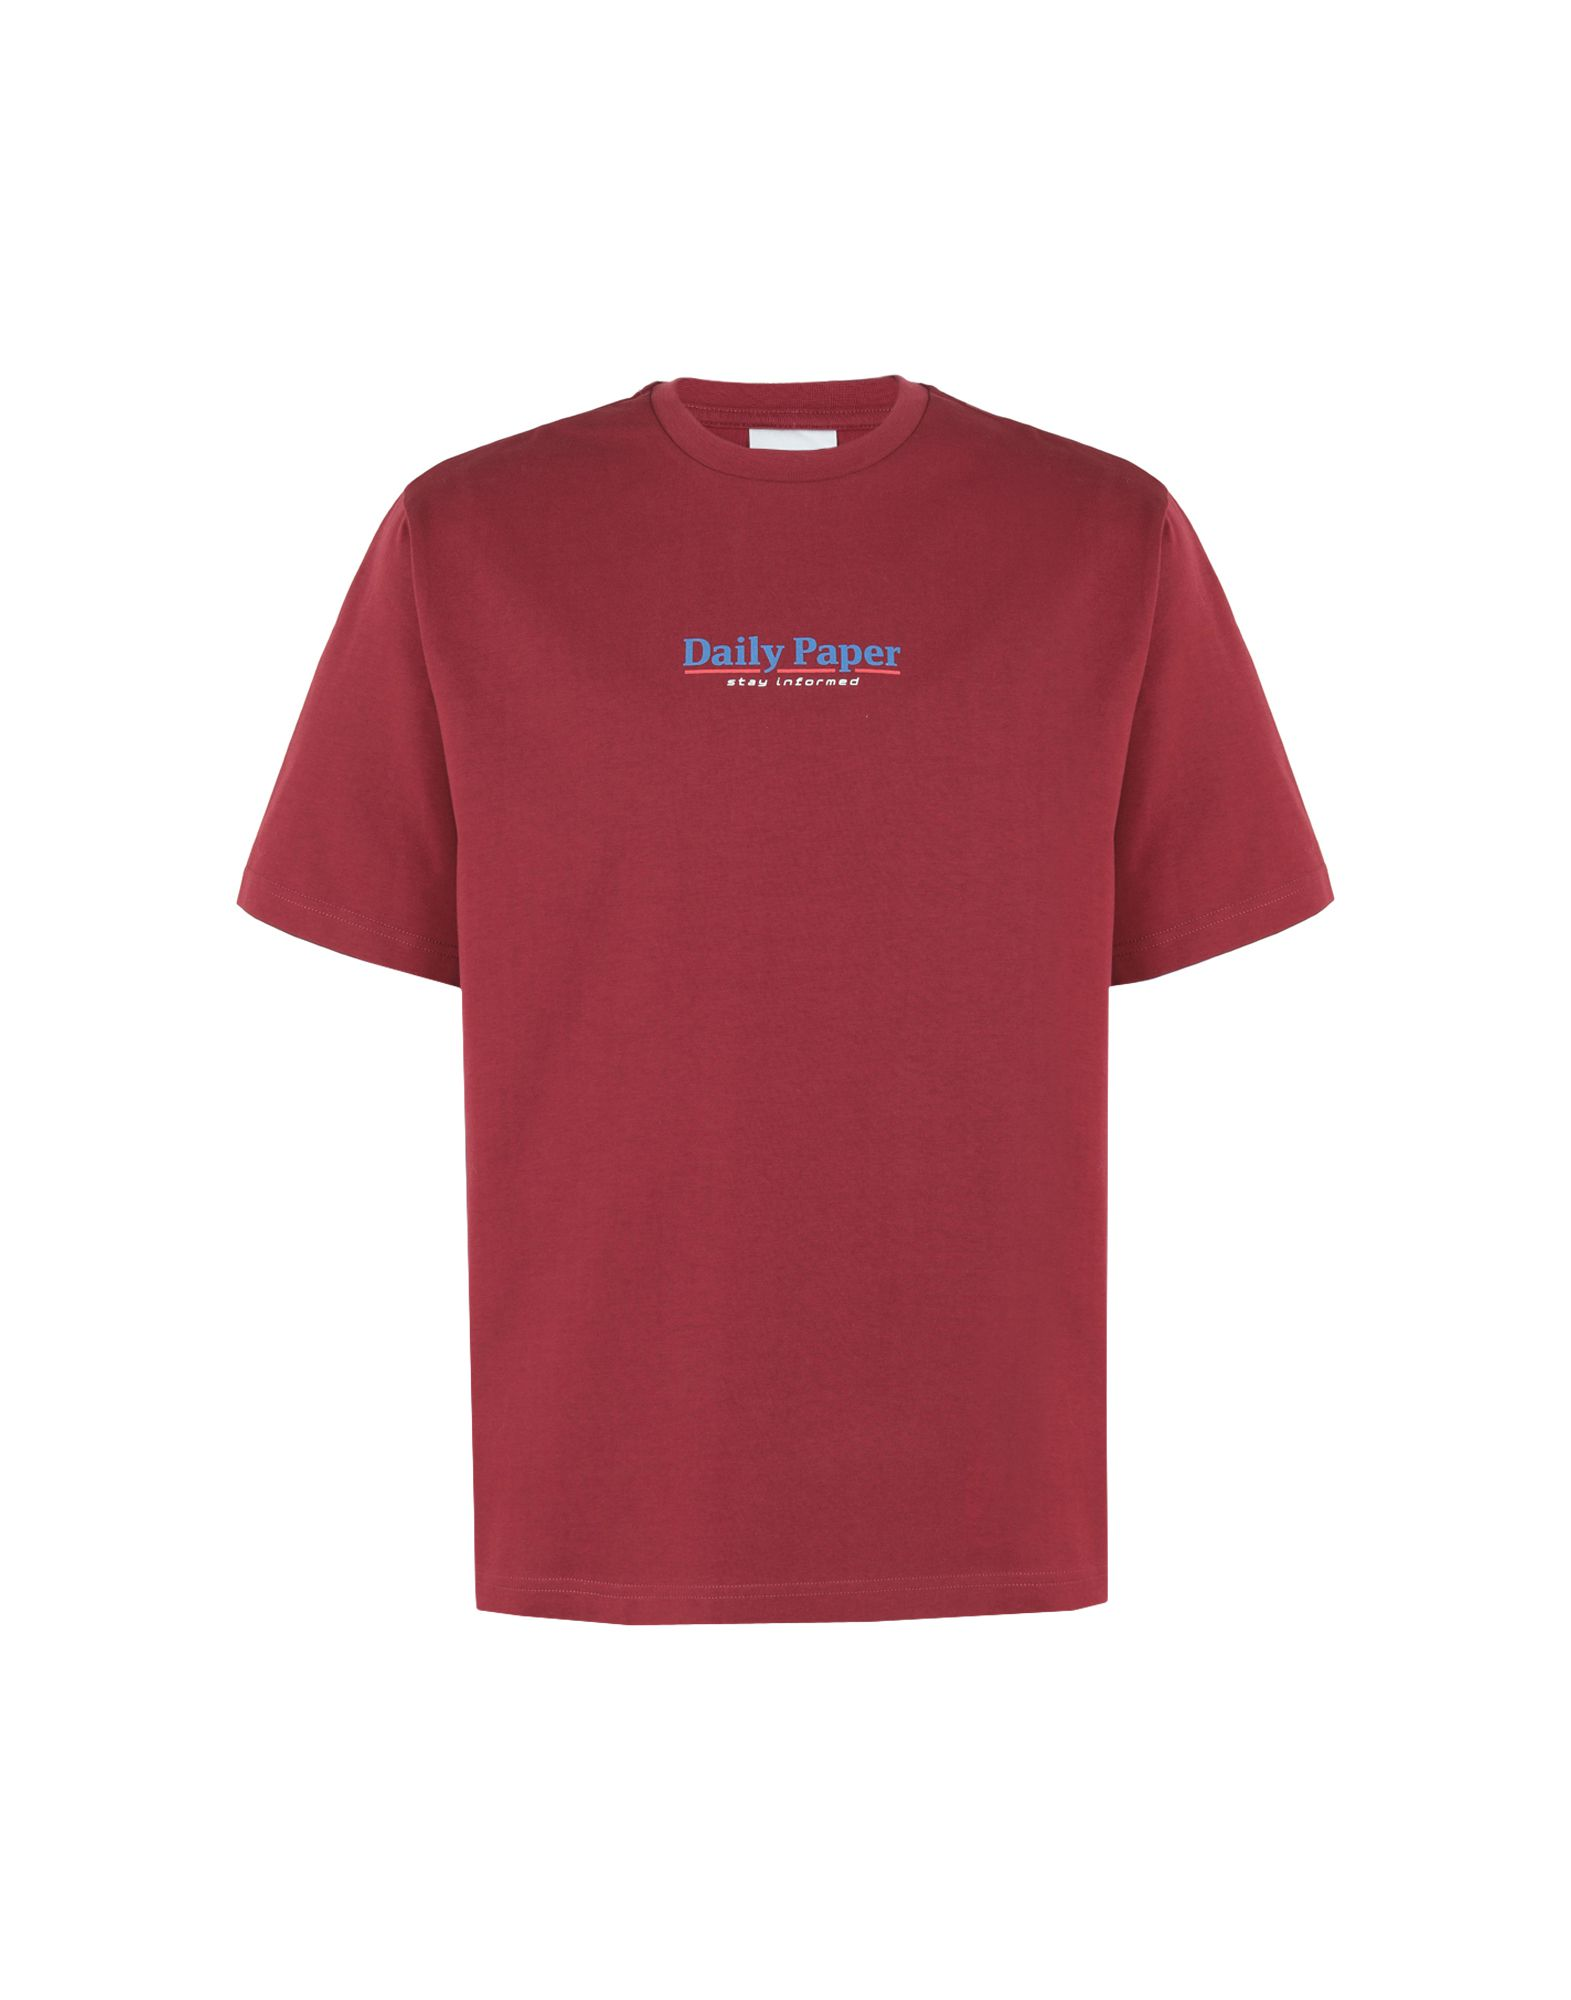 DAILY PAPER T-Shirts in Maroon